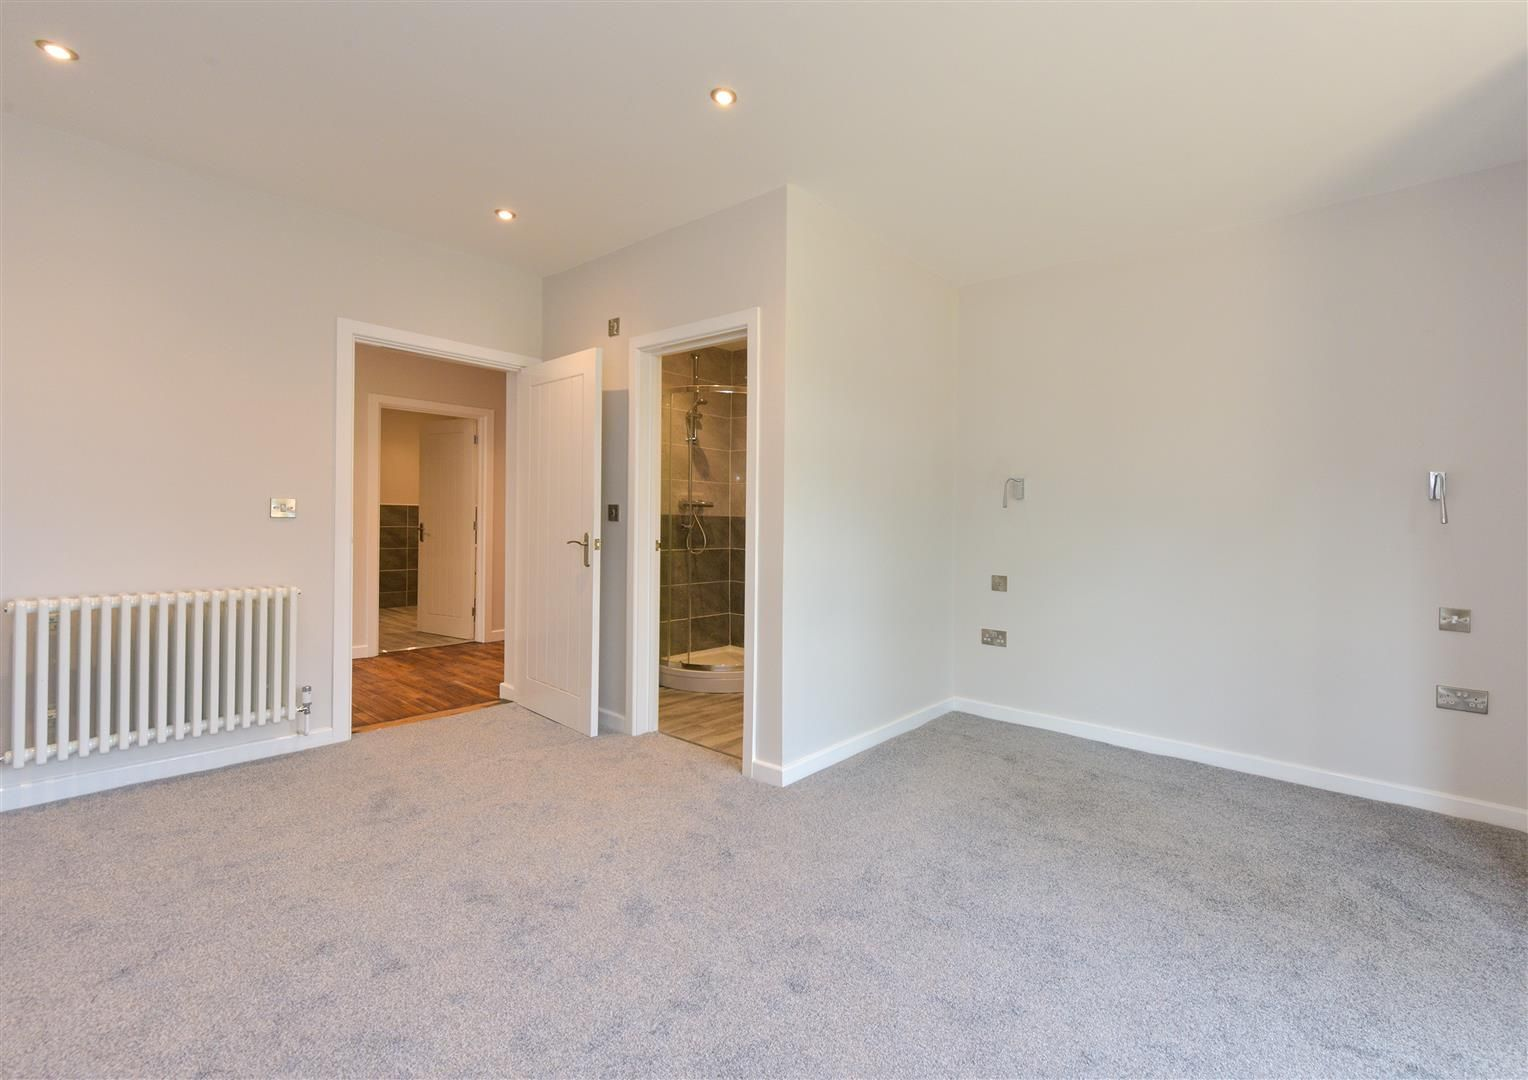 2 bed apartment for sale 16